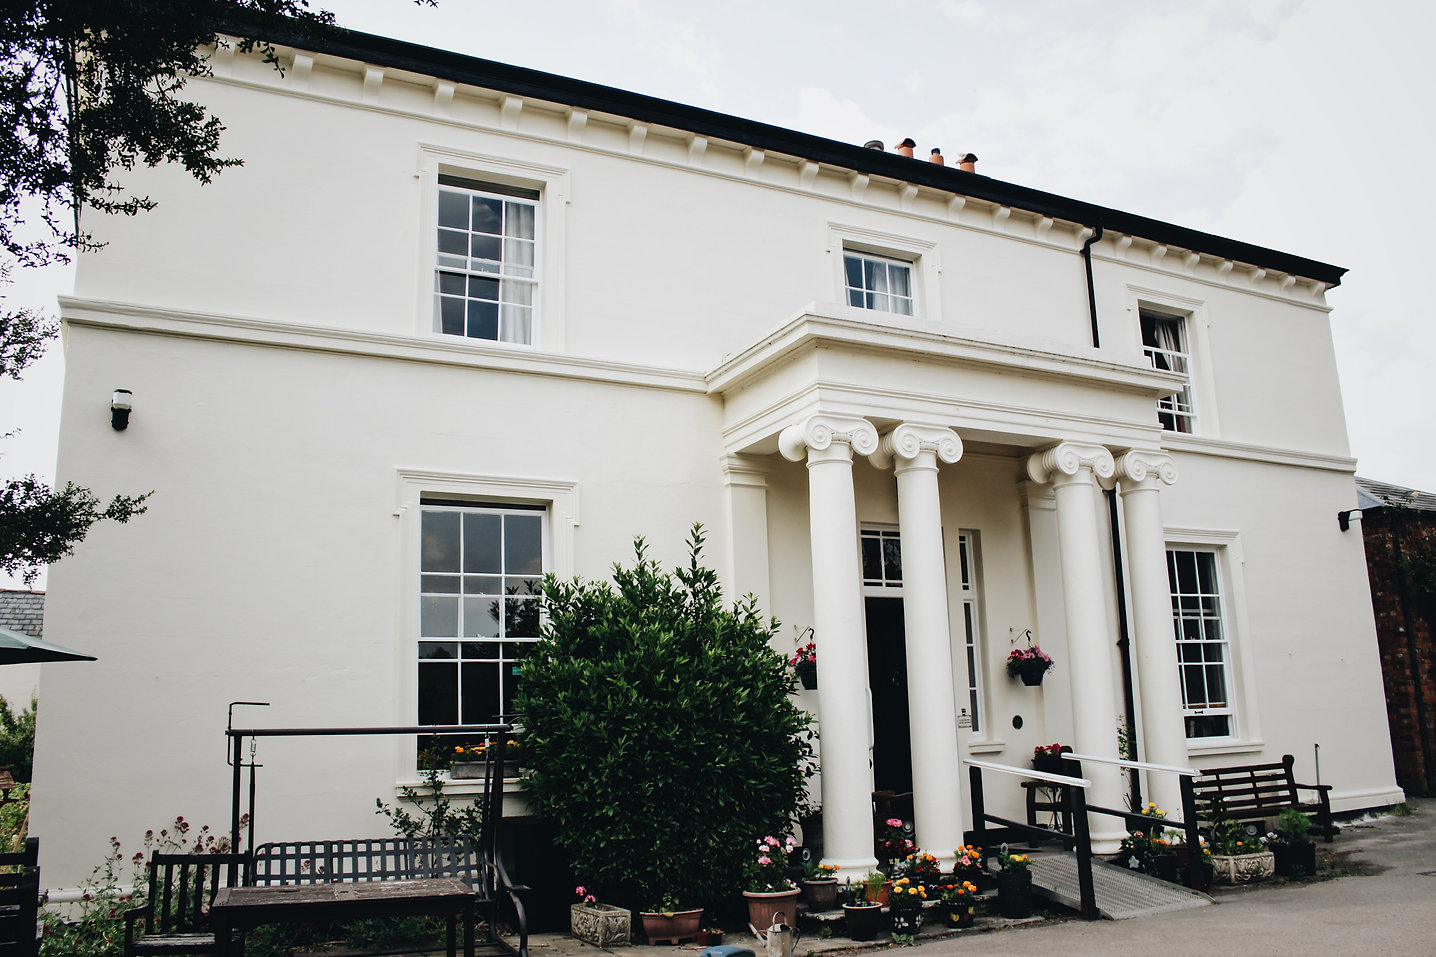 The Old Rectory Care Home